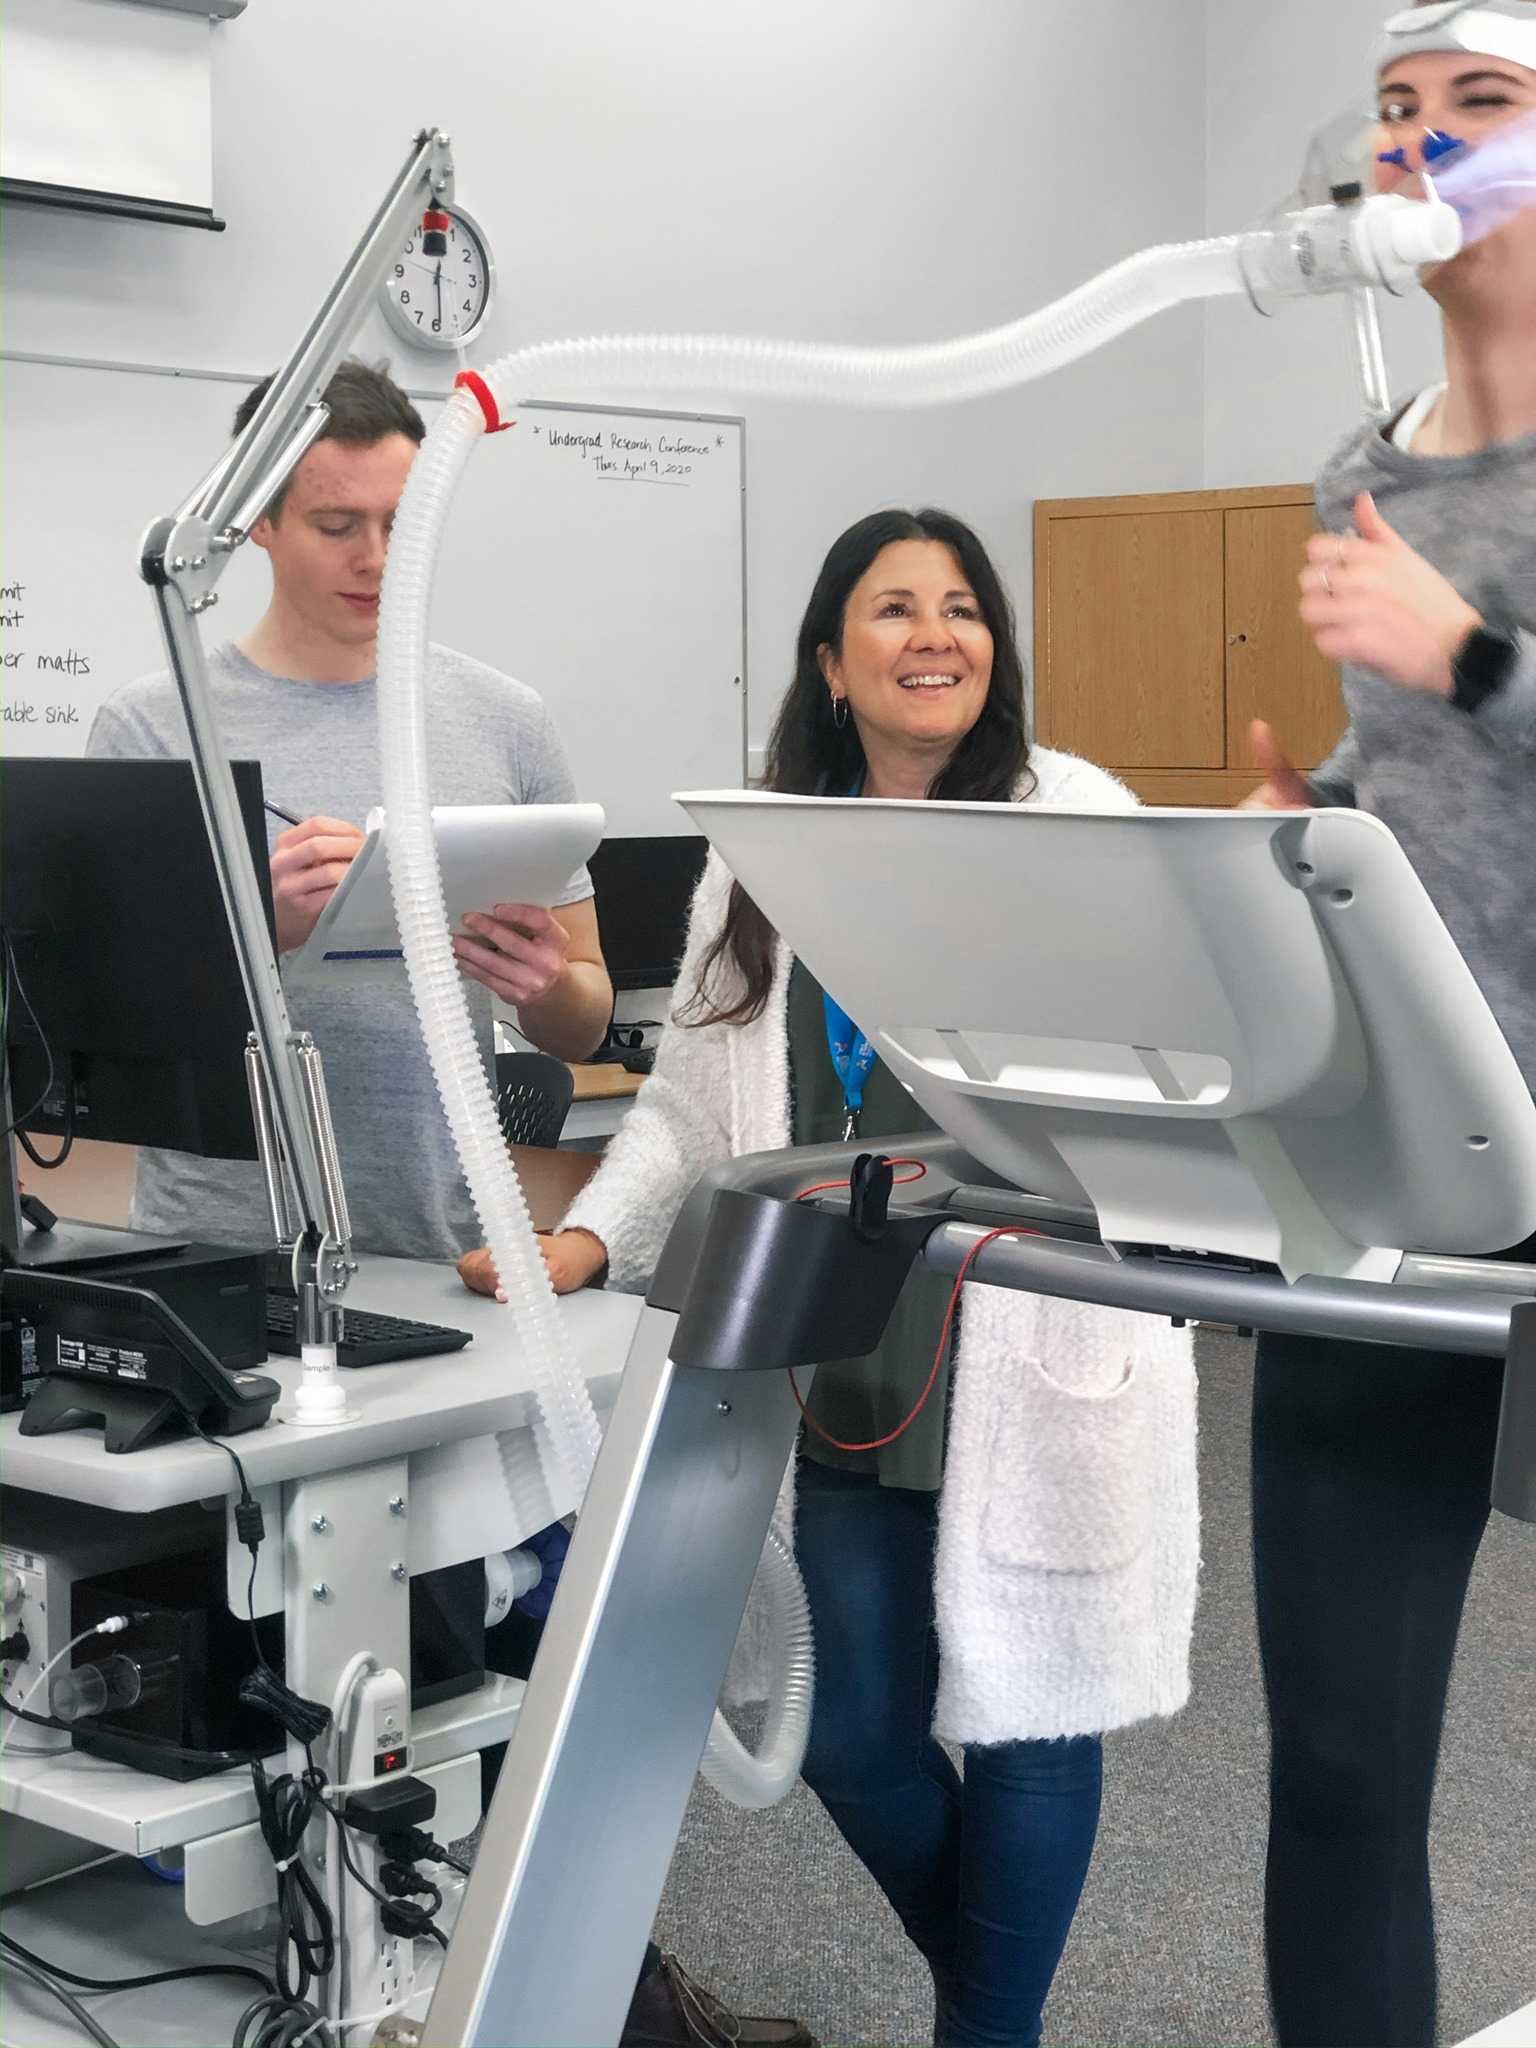 Dr. Anita Cote conducts research on athletes, with the help of TWU student researchers.